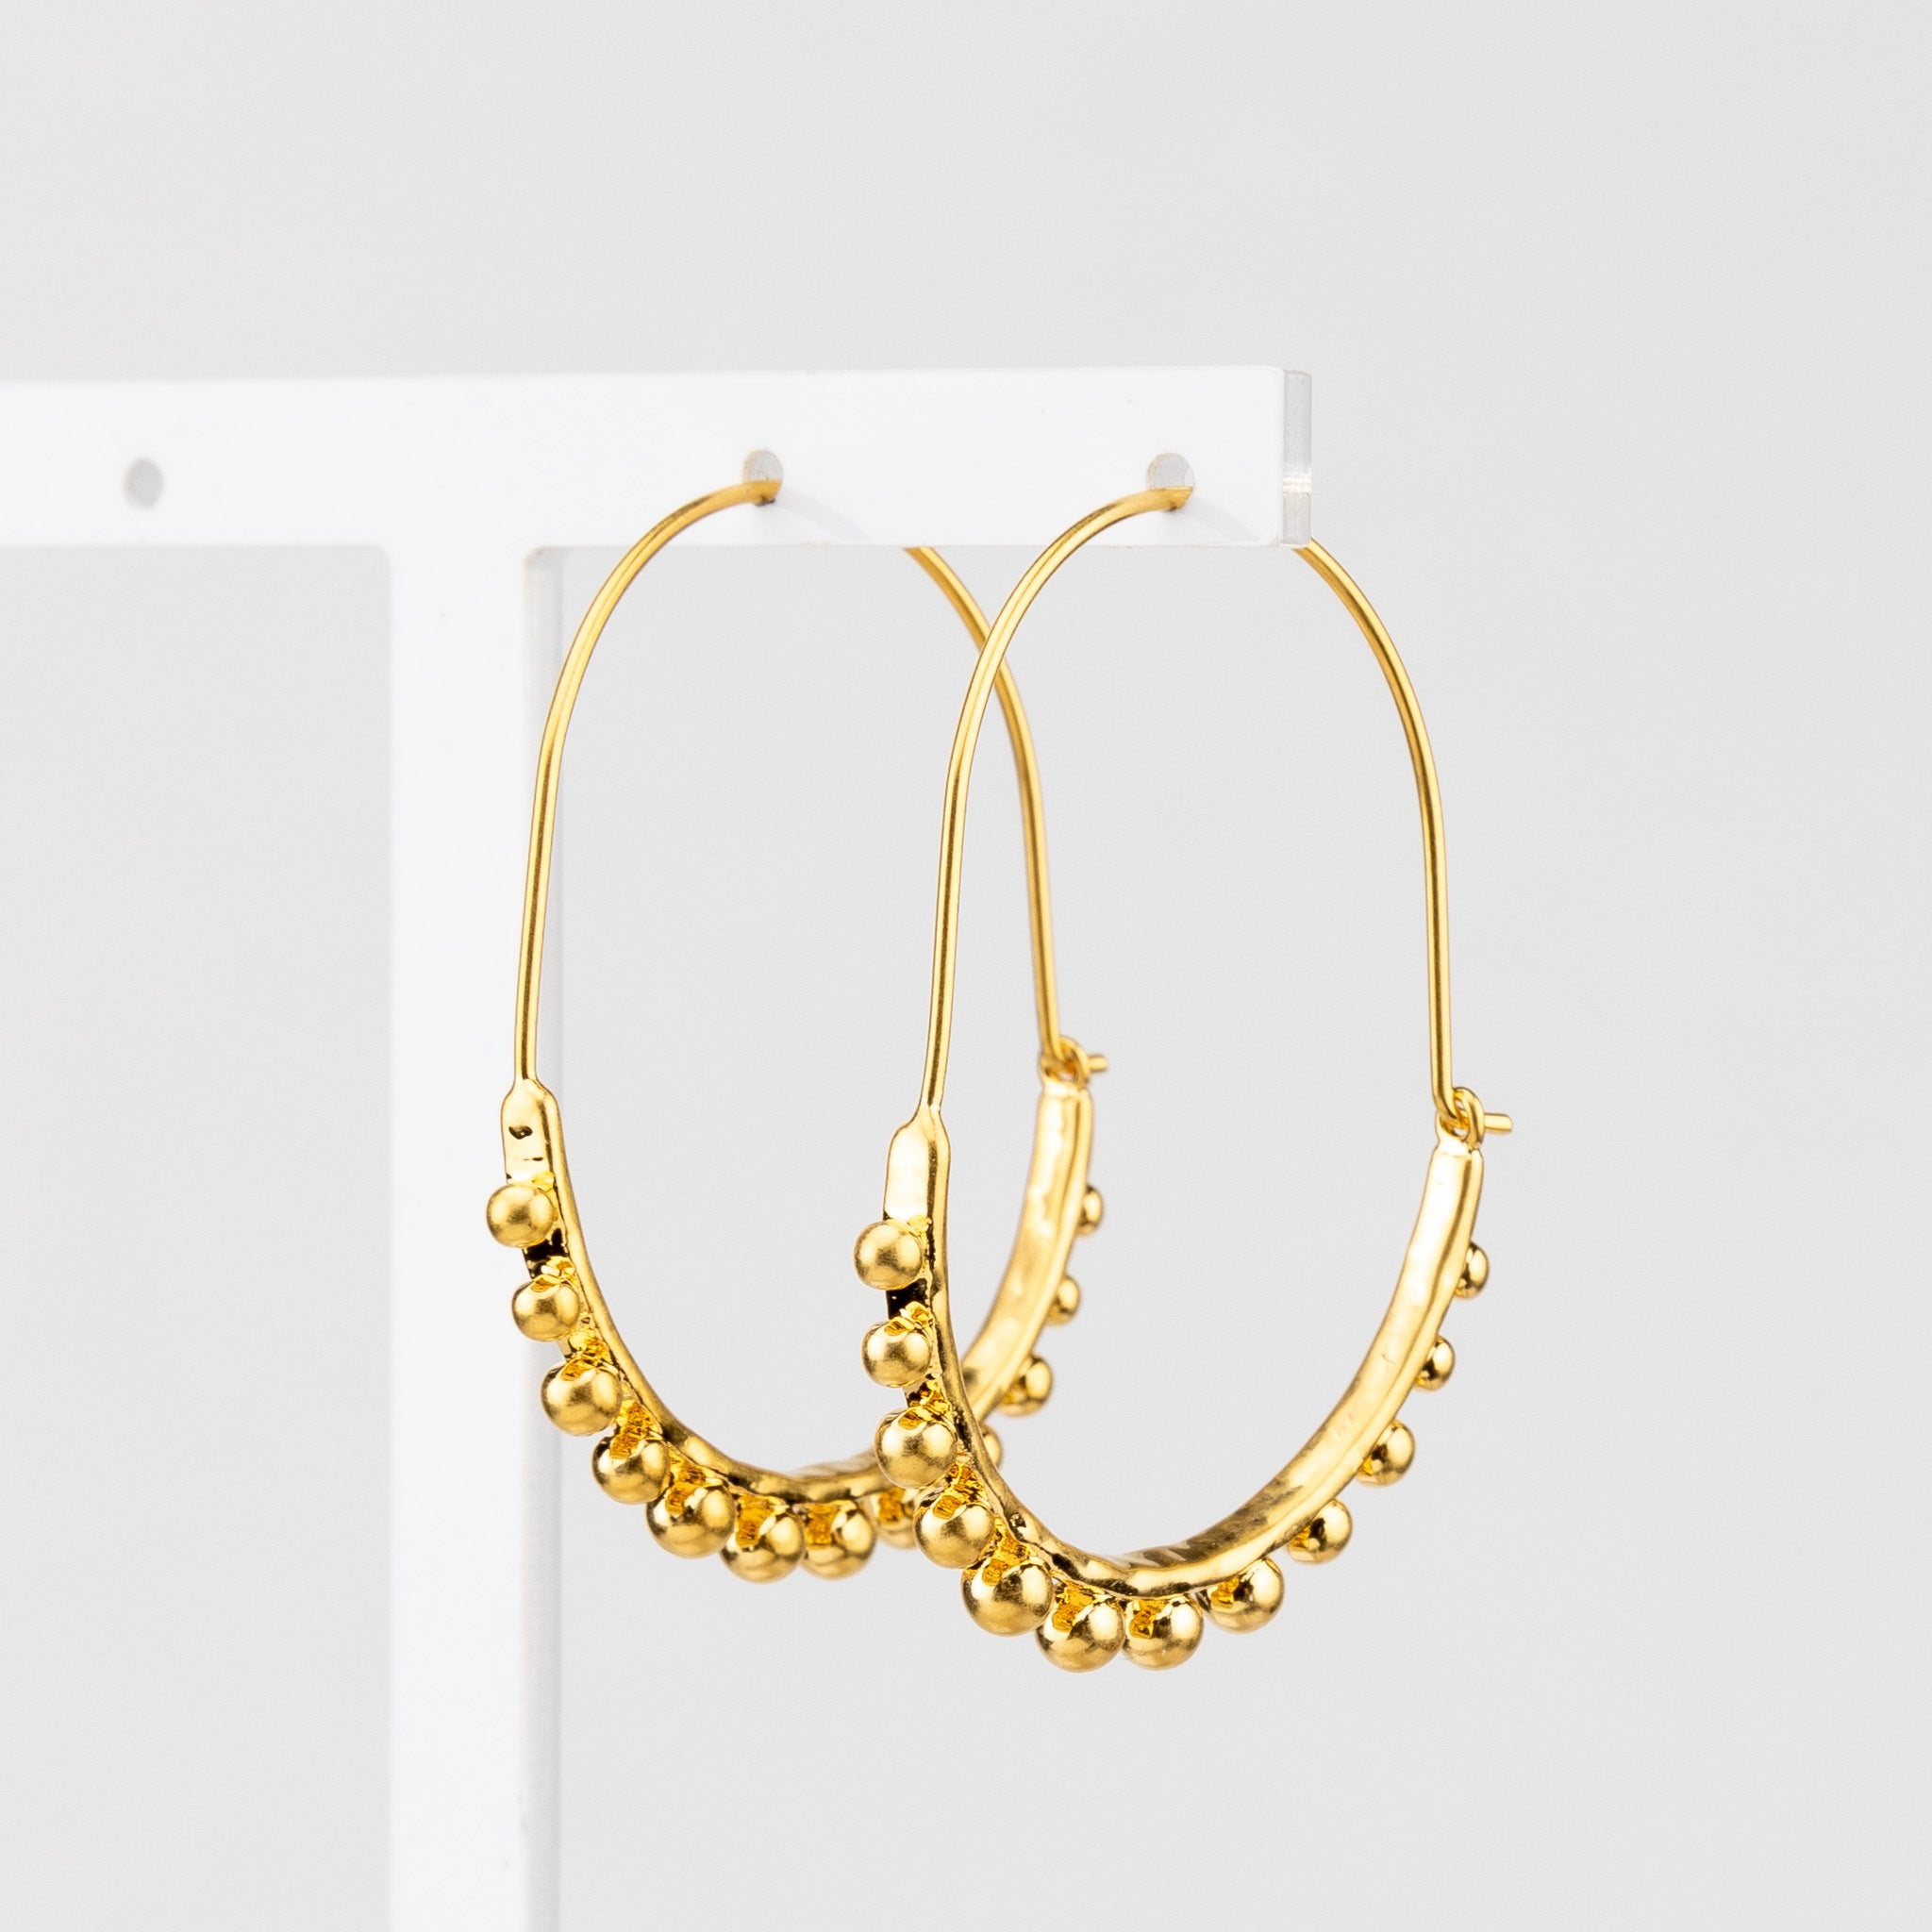 Ballbearing Hoop Earrings - gold